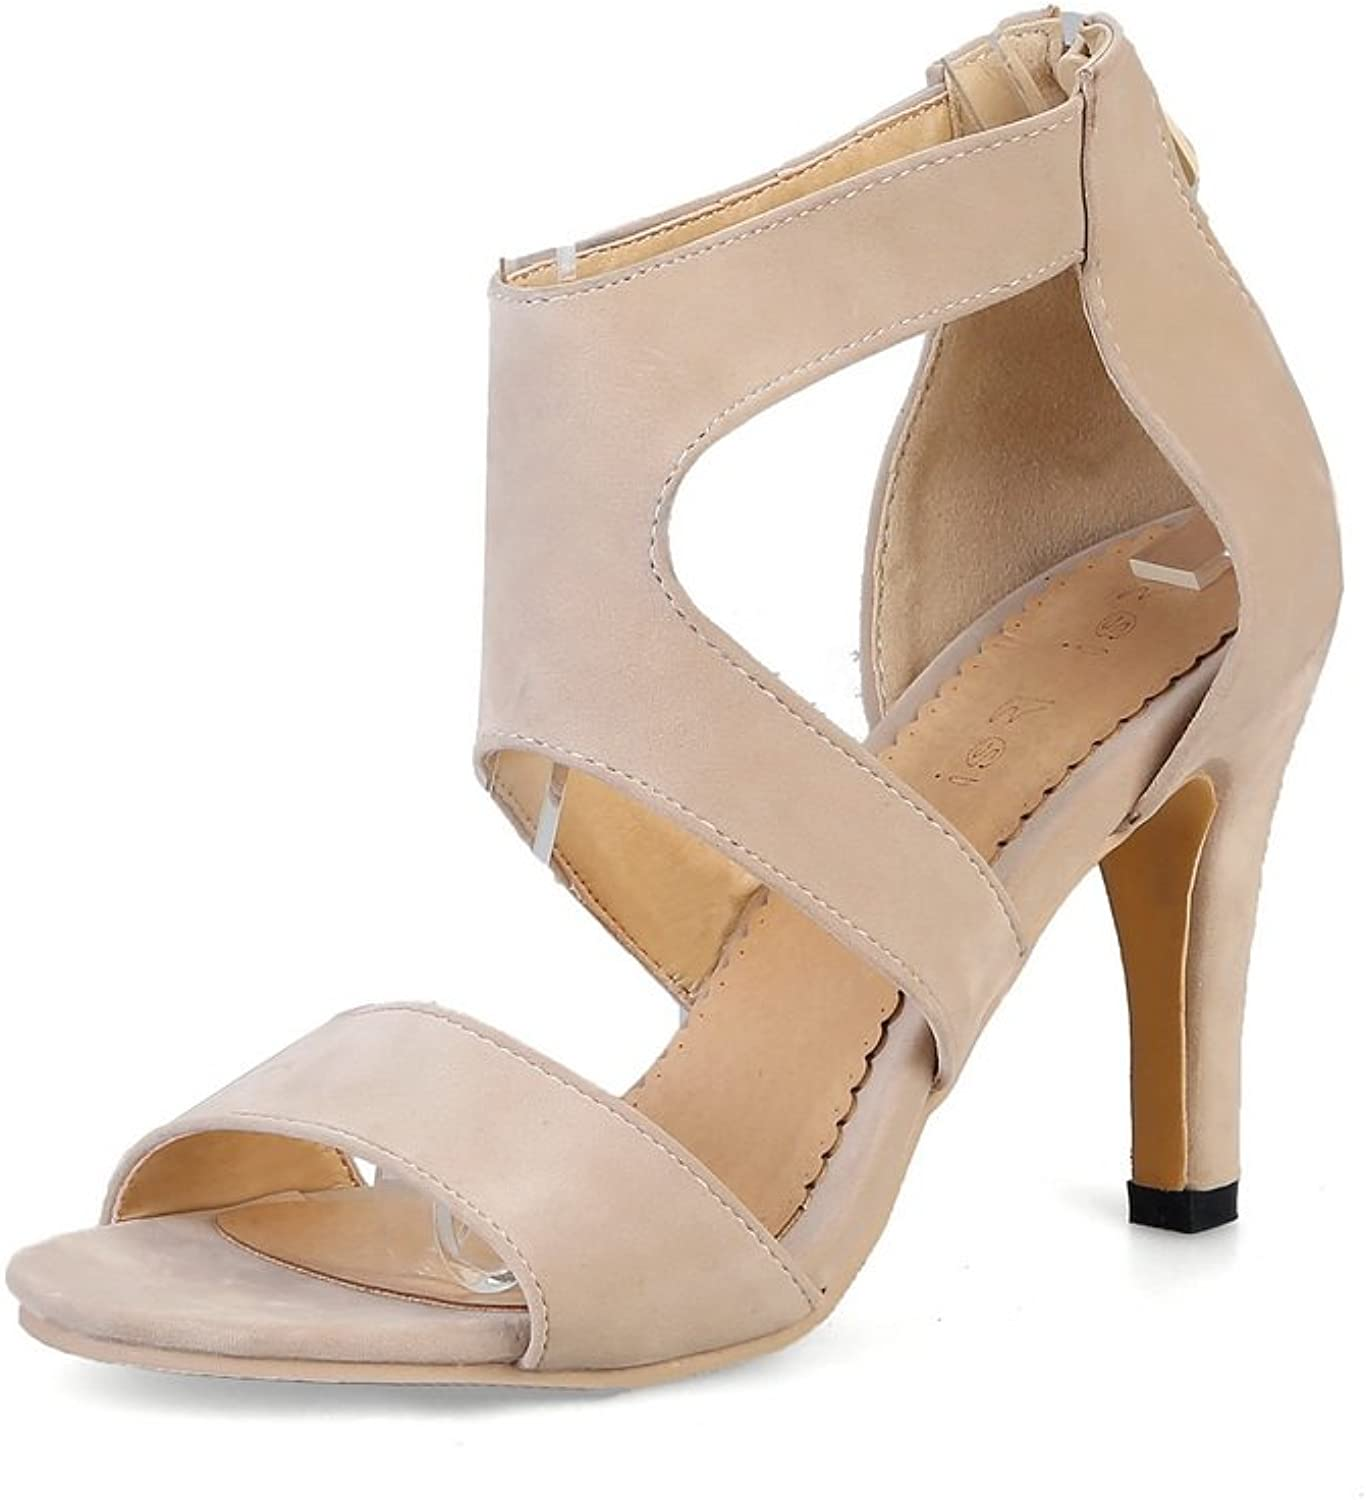 AdeeSu Womens Hollow Out Pointed-Toe Spikes Stilettos Microfiber Sandals SLC03333